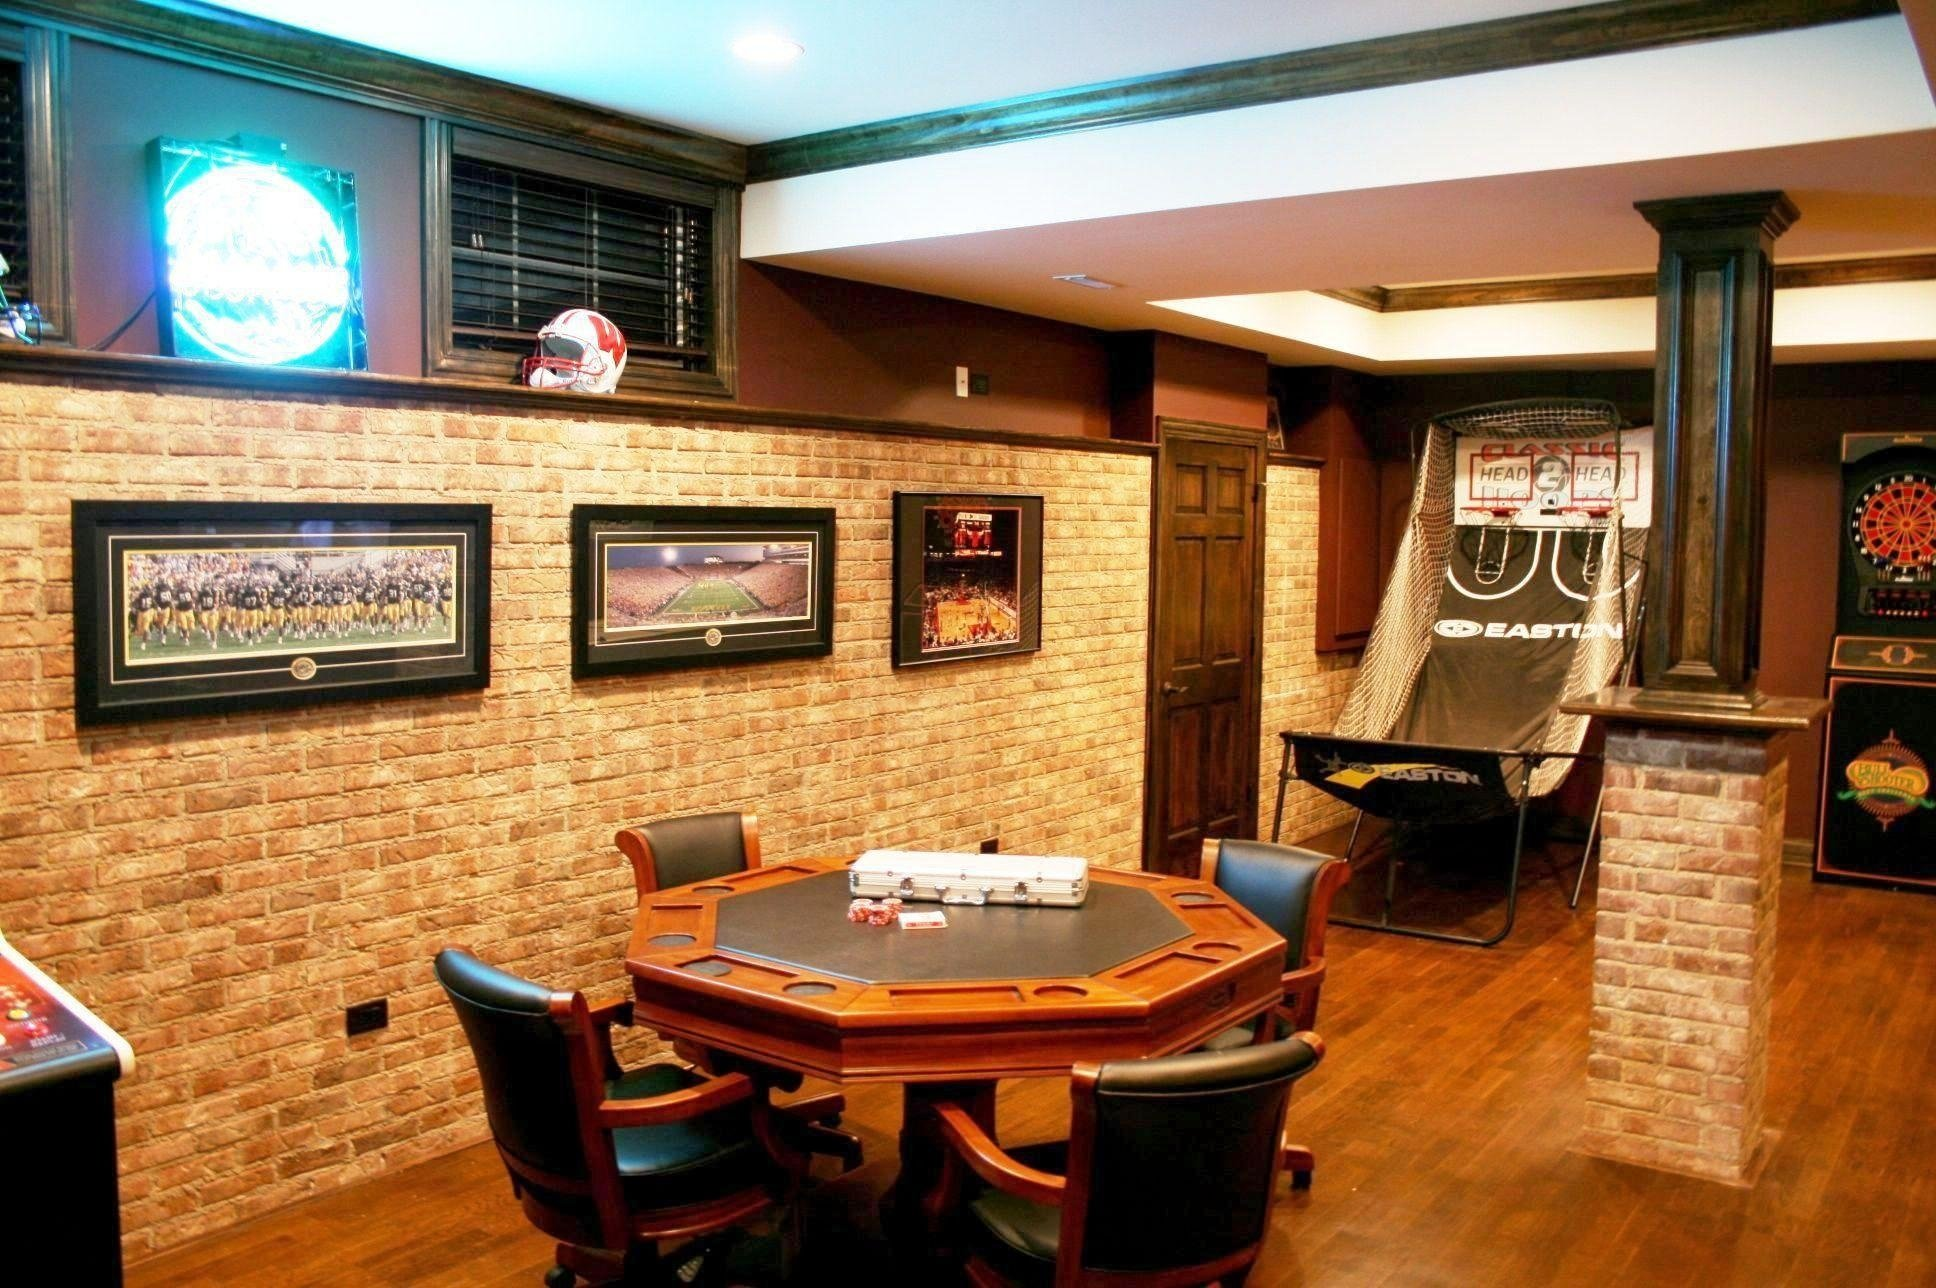 10 Nice Game Room Ideas For Teenagers design a bedroom games fresh interior design game room ideas for